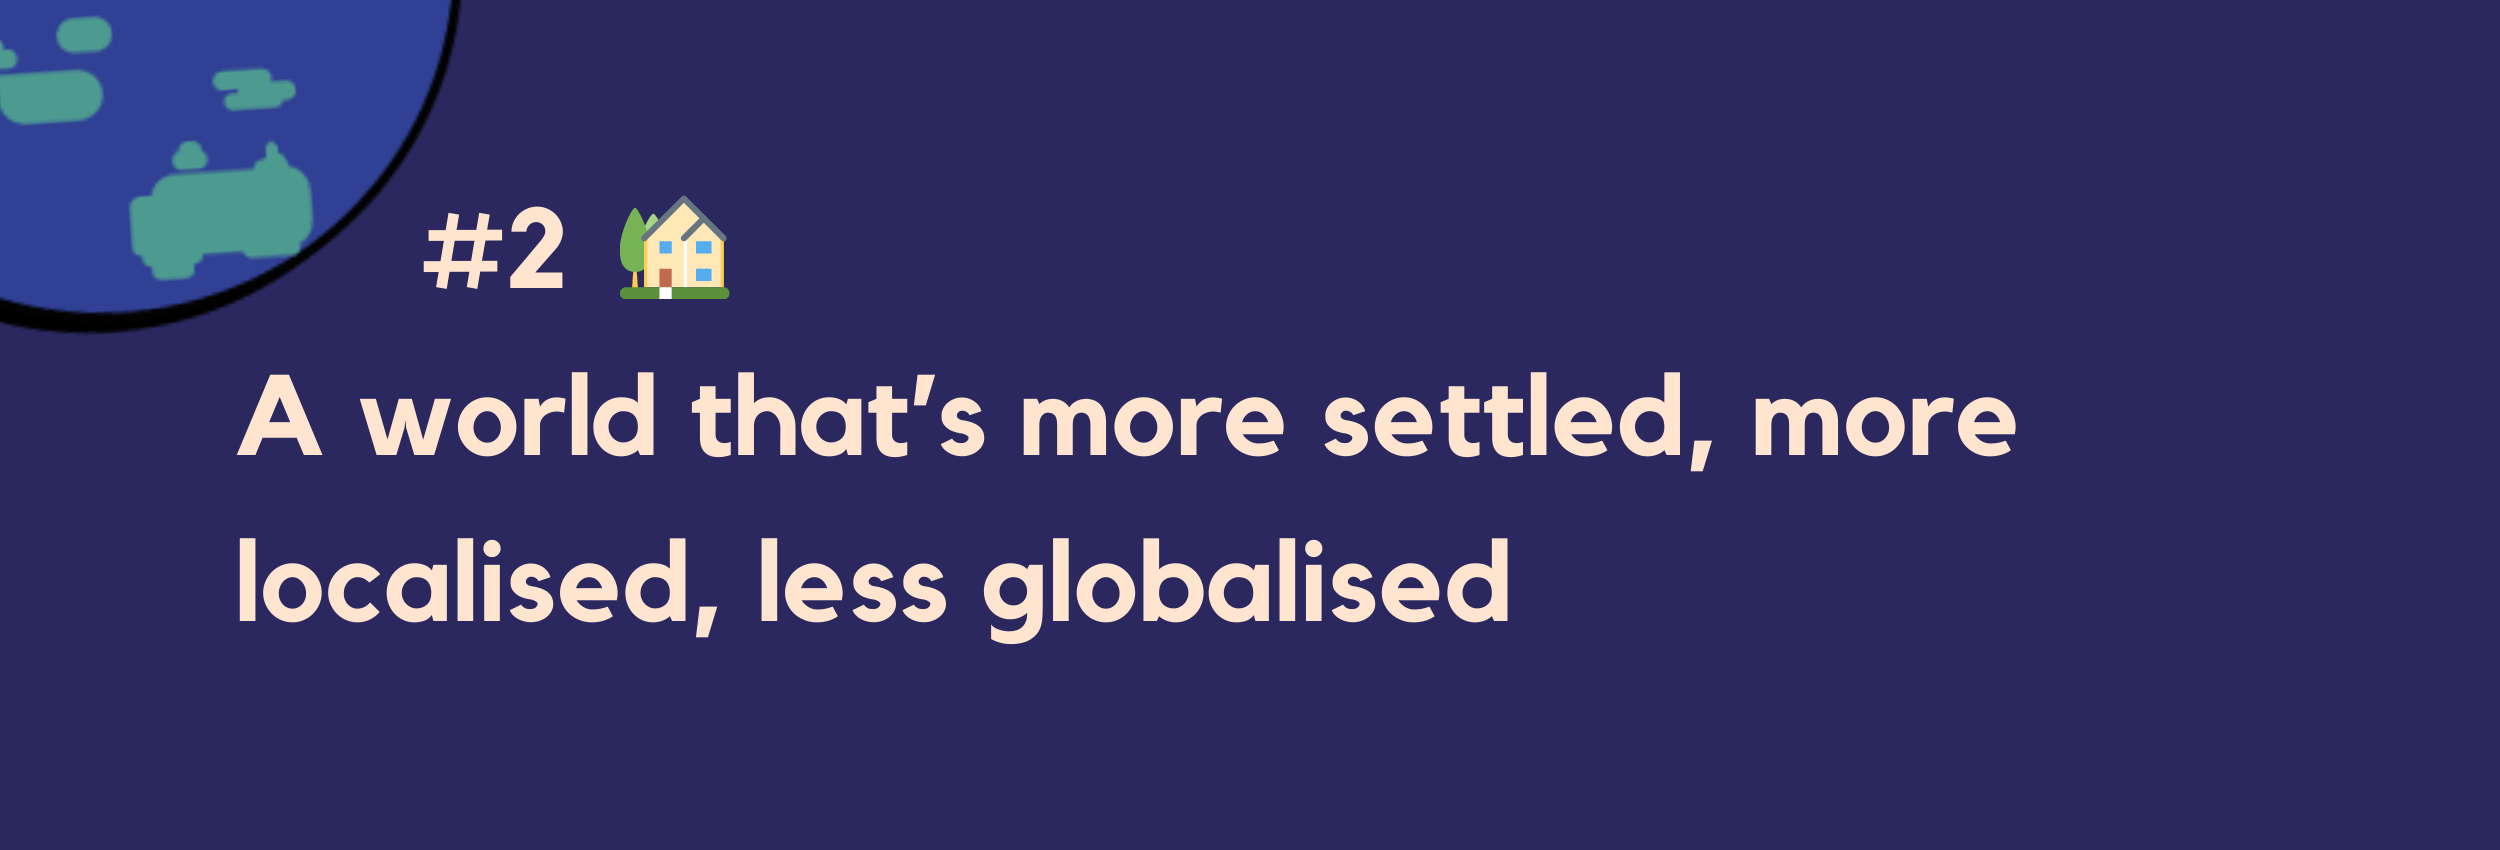 #2 — A world that's more settled, more localised, less globalised